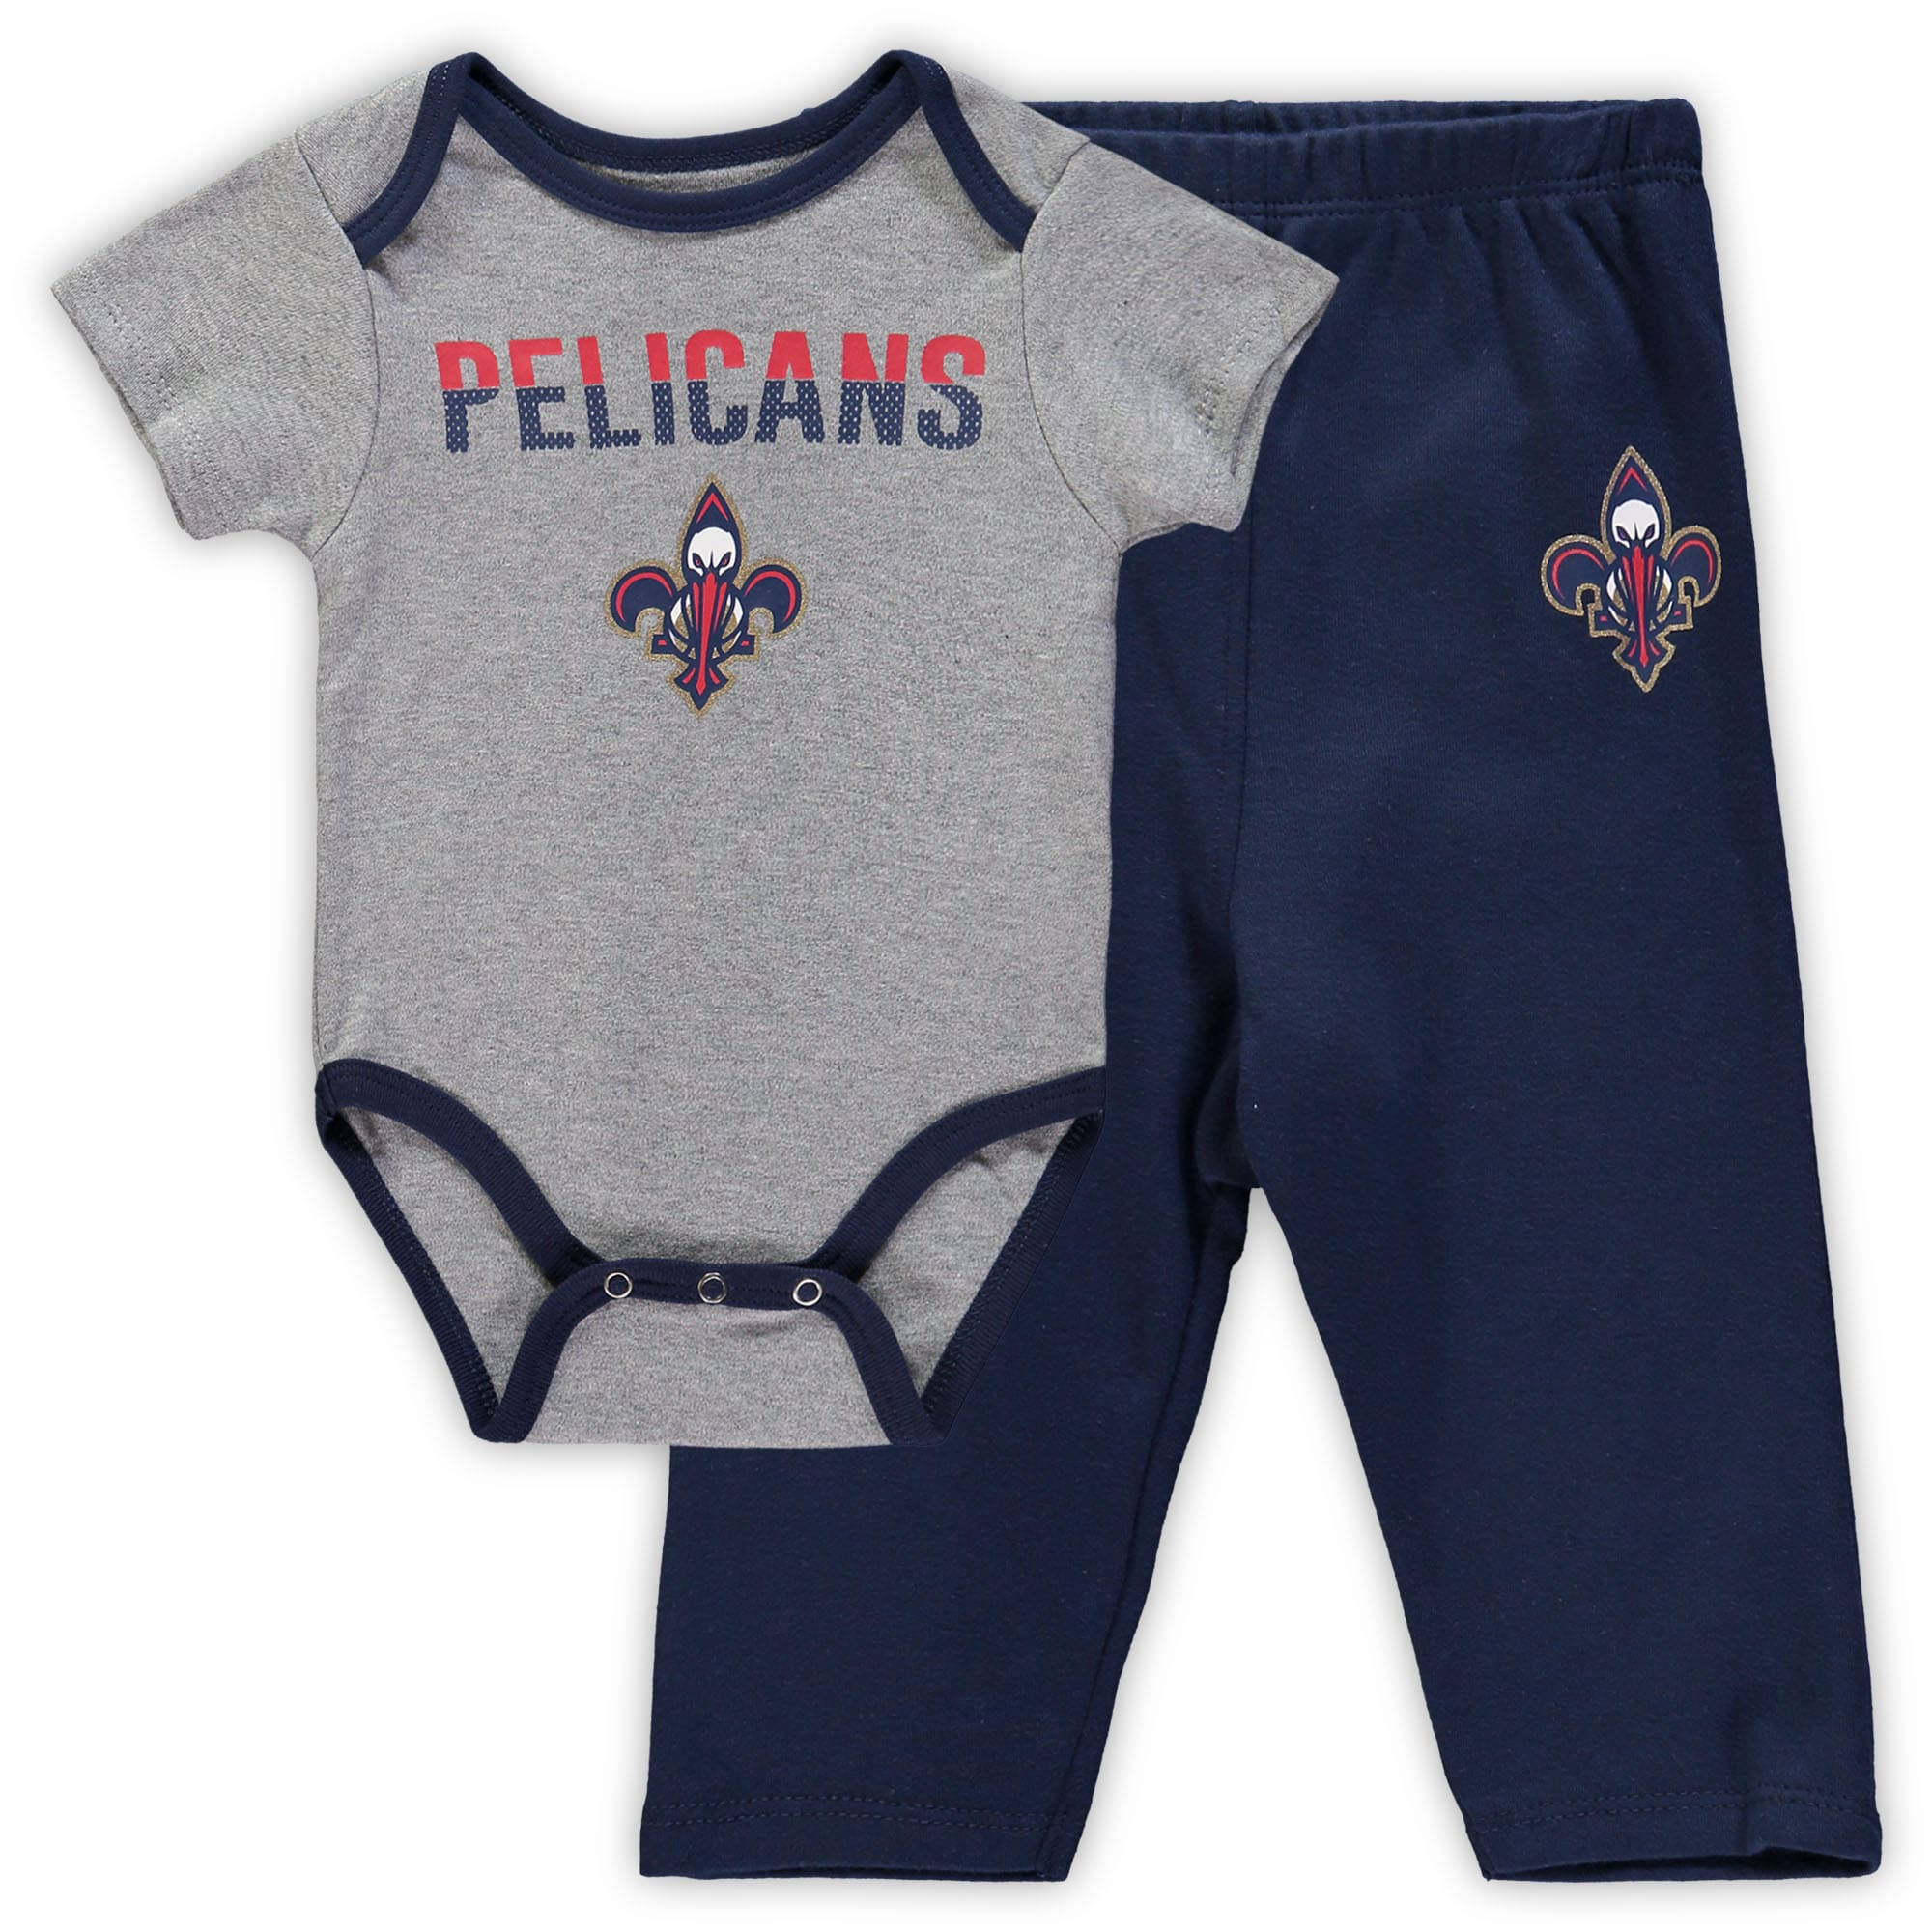 New Orleans Pelicans Newborn & Infant Pointguard Bodysuit and Pants Set - Heathered Gray/Navy